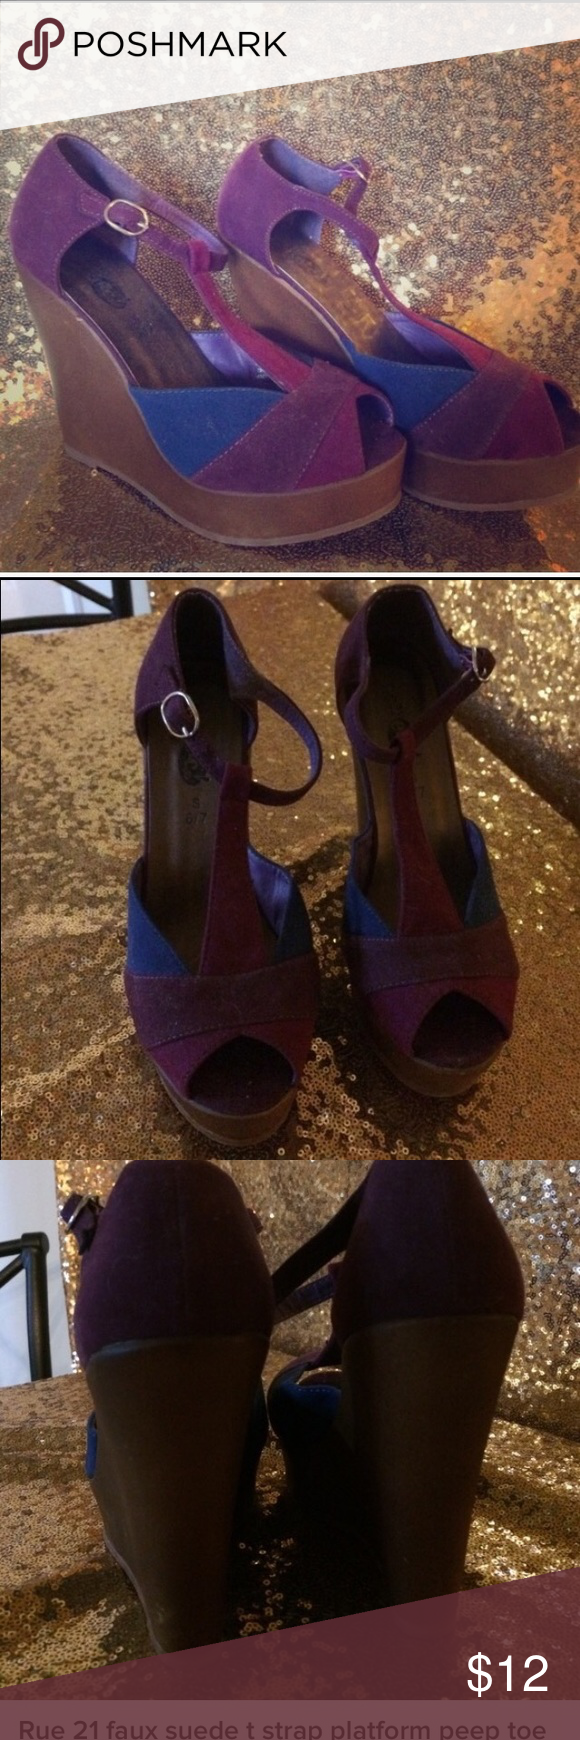 Rue 21 faux suede t strap platform shoes 👠 Rue 21 t strap faux suede platform shoes 👠 peep toe. Size 6/7  best fits size  6 1/2 some scuffs from storage , never been worn. Rue 21 Shoes Platforms